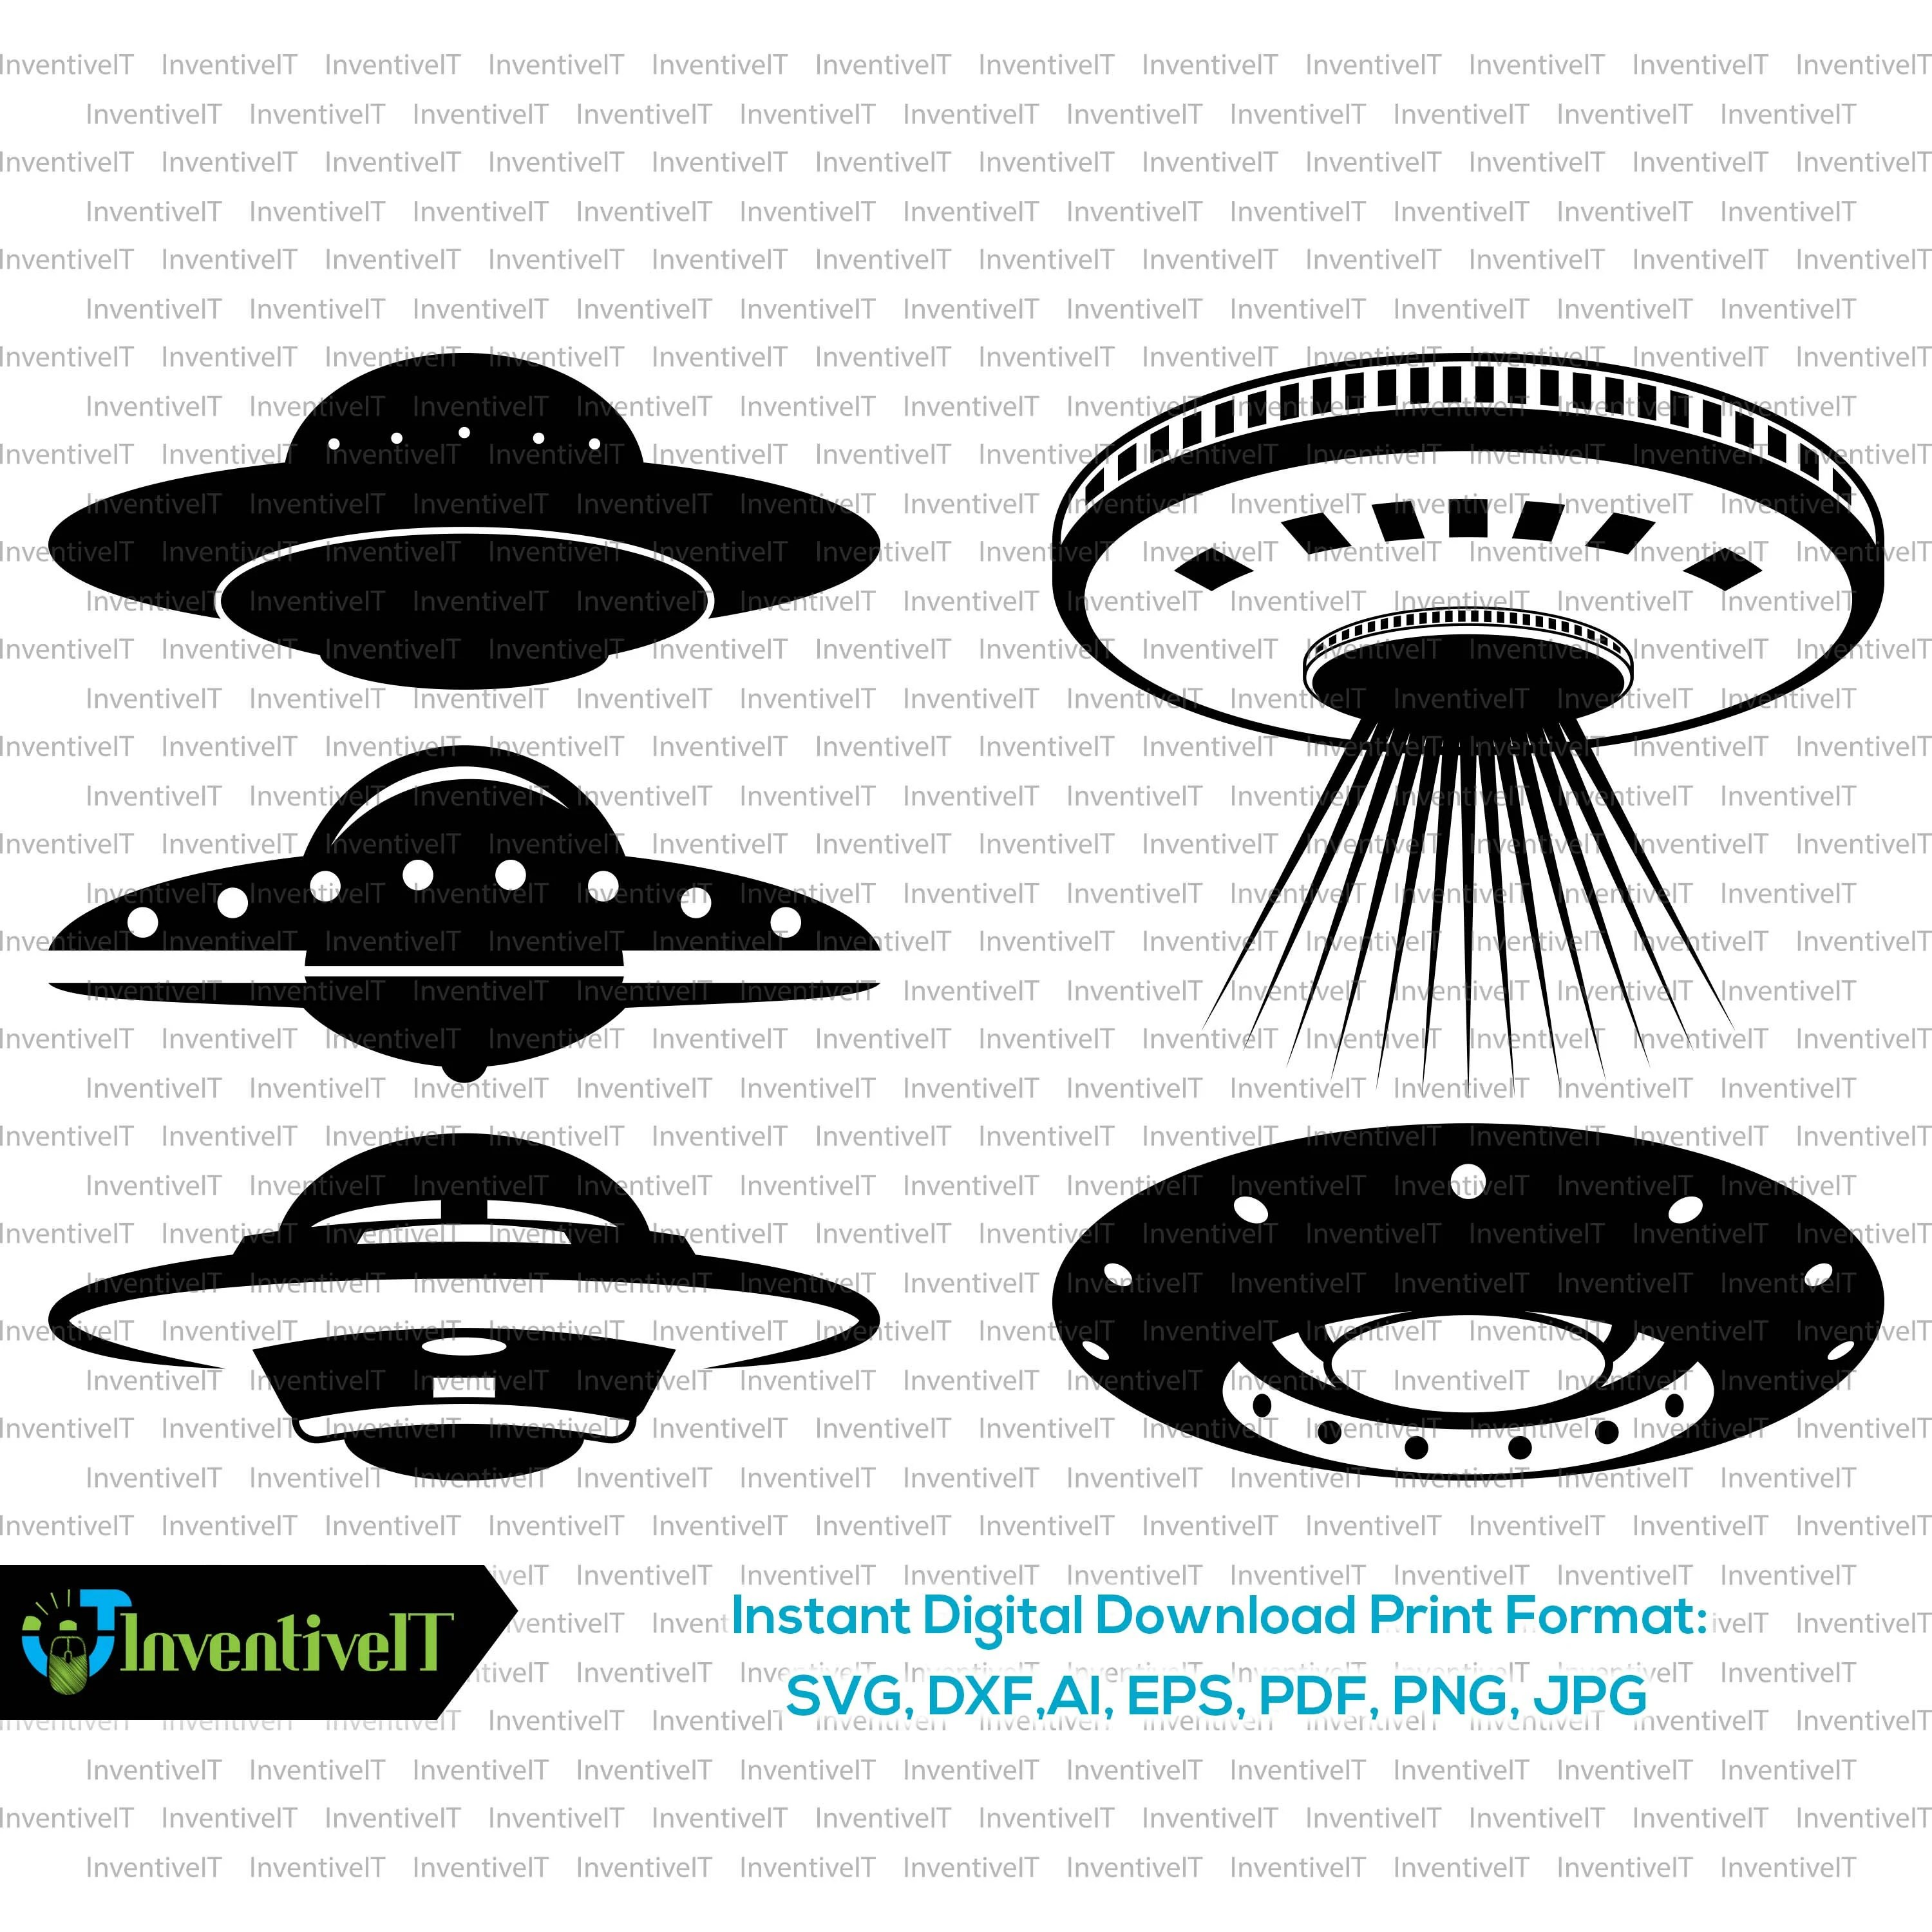 Ufo Svg Ufo Silhouette Ufo Vector Clip Art Svg Files